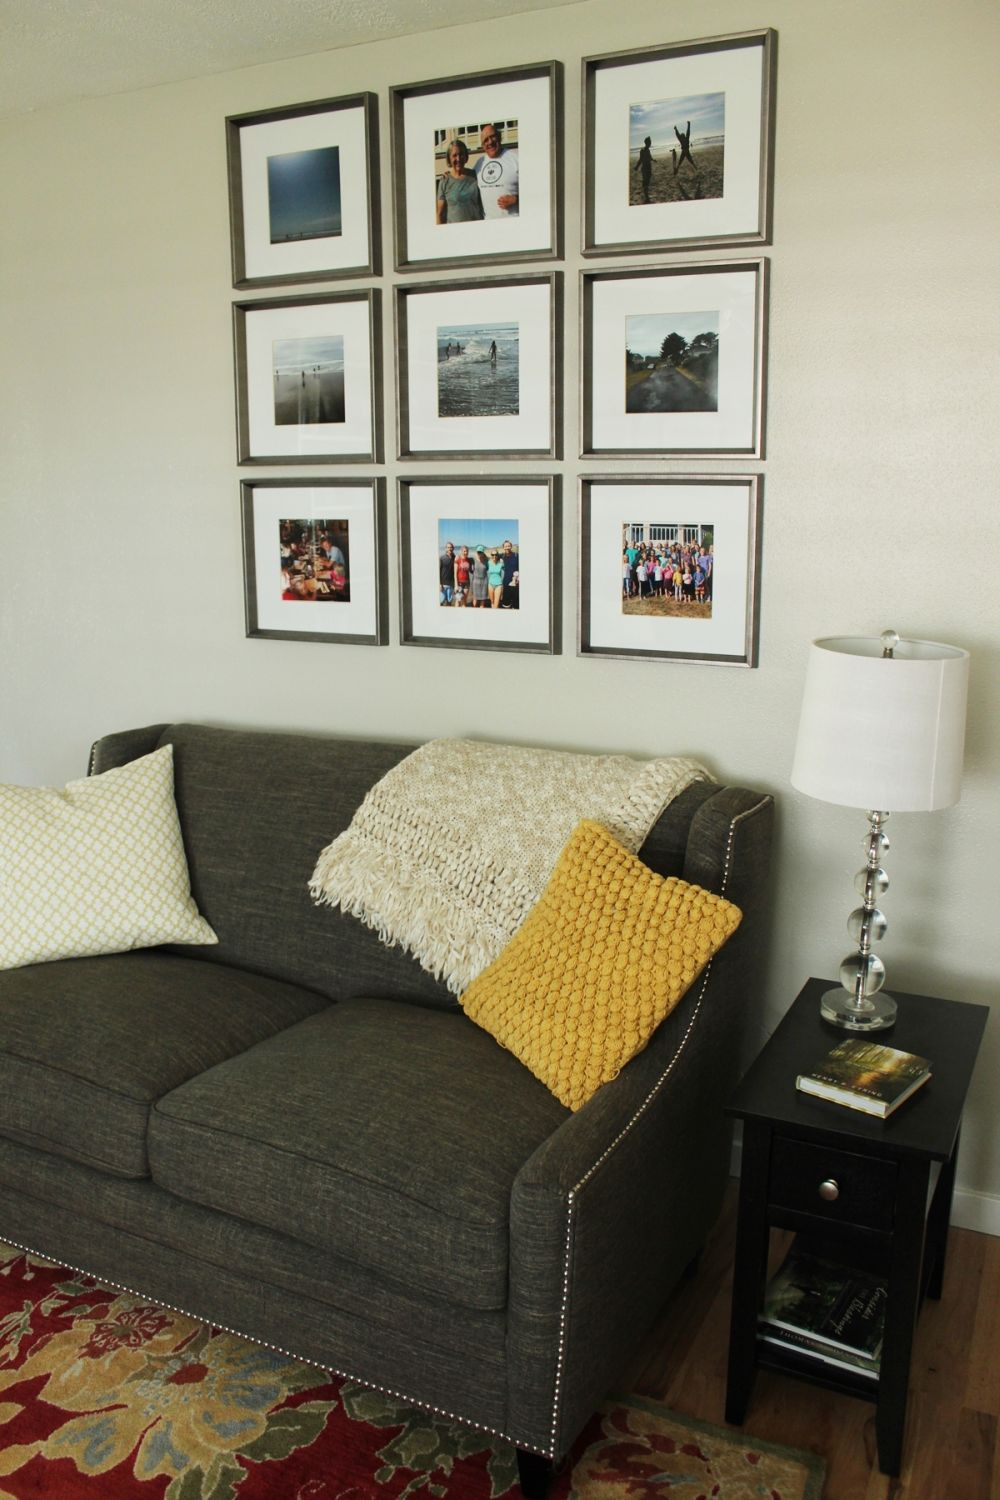 How to decorate a living room simply and stylishly - Pictures of decorated living rooms ...